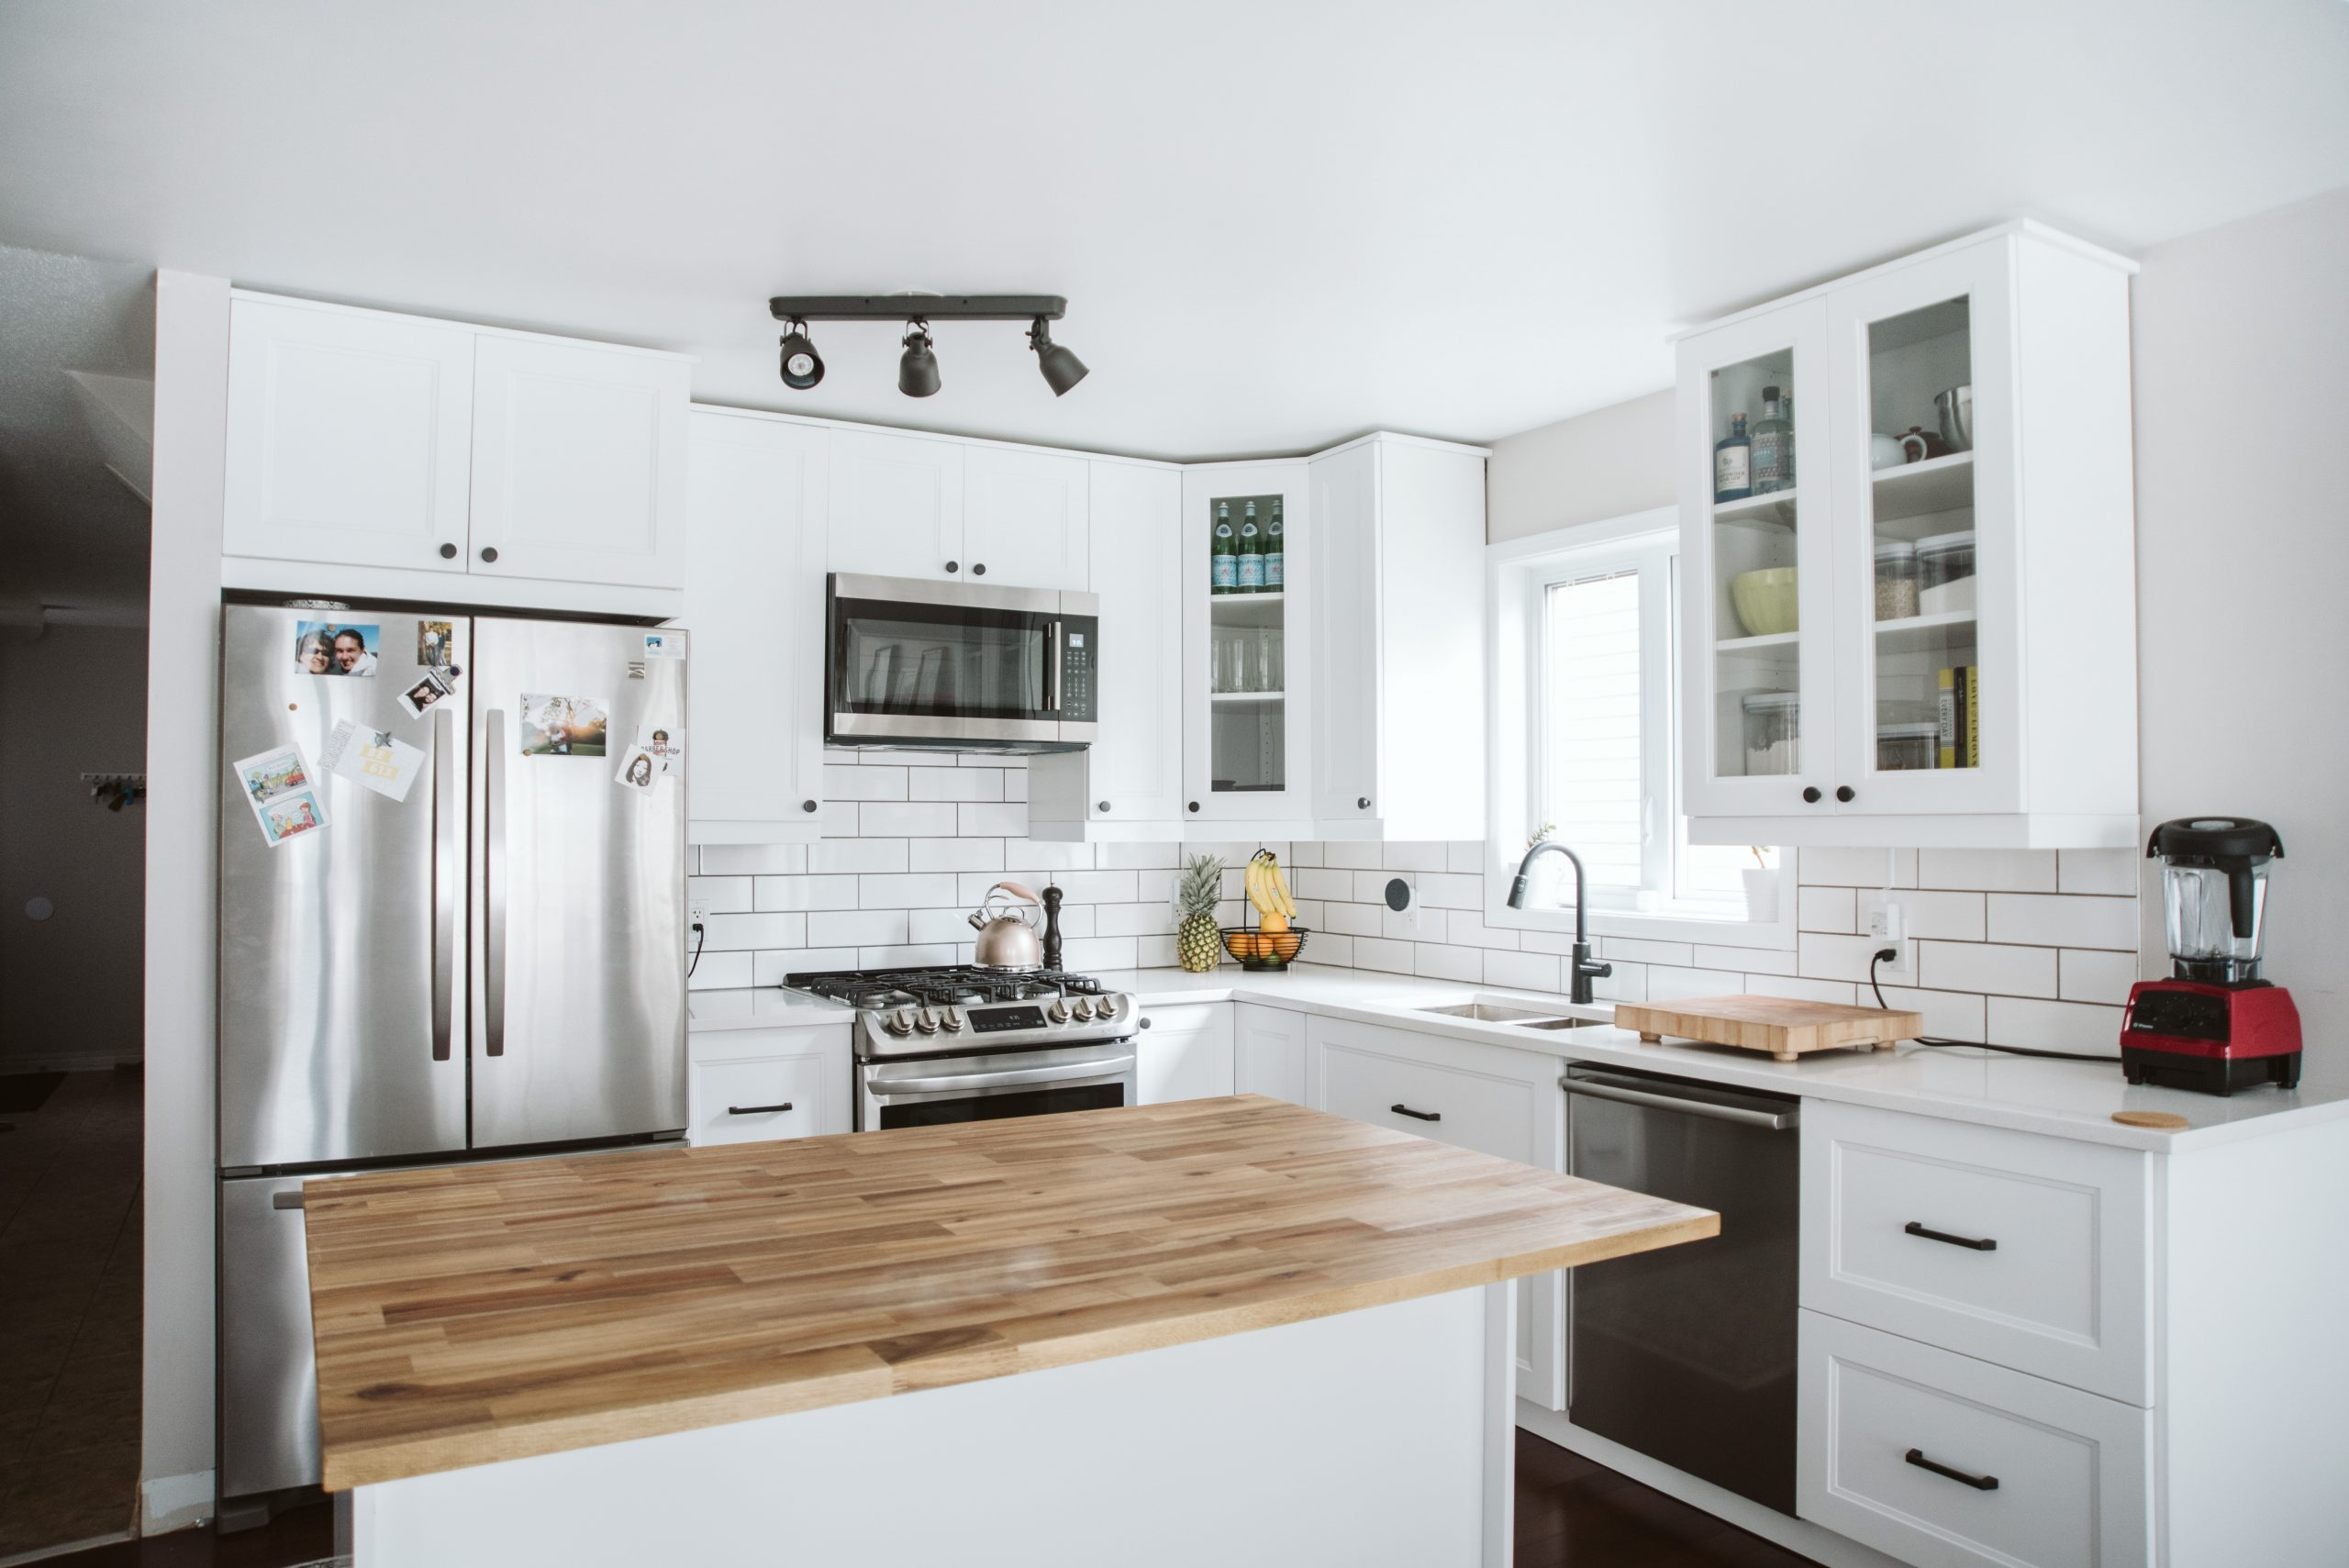 How Much Does an IKEA Kitchen Cost? (Plus Lessons Learned!) - Ikea Kitchen Cabinet Discount